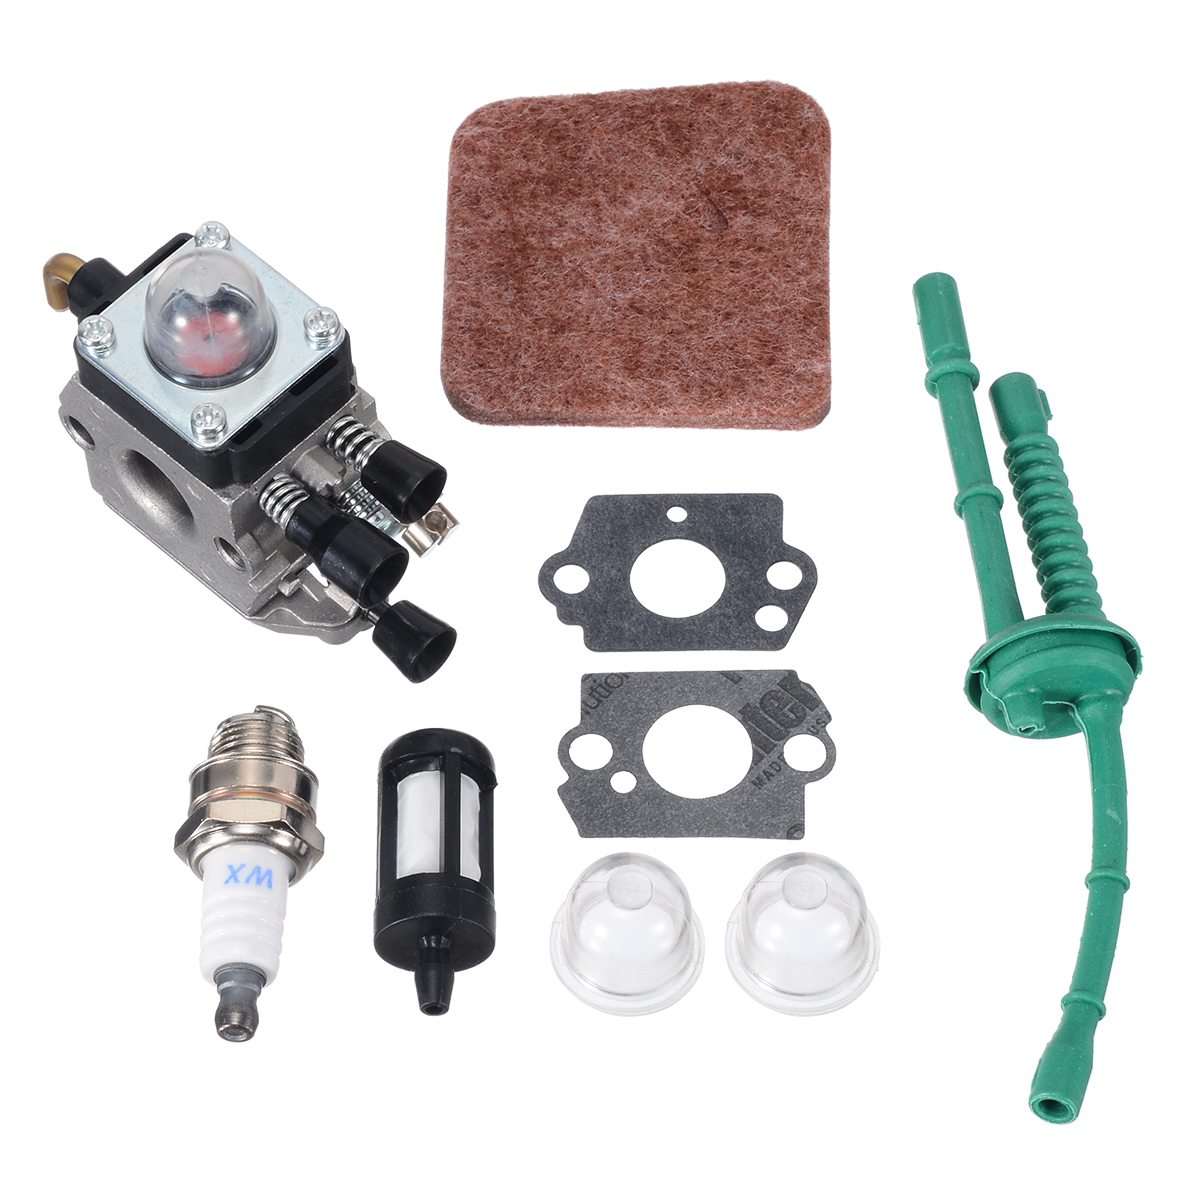 High Quality Carburetor Kit for FS38 FS45 FS46 FS55 KM55 FS85 Air Fuel Filter Gasket Carb 1 set for Power Tool PartsHigh Quality Carburetor Kit for FS38 FS45 FS46 FS55 KM55 FS85 Air Fuel Filter Gasket Carb 1 set for Power Tool Parts